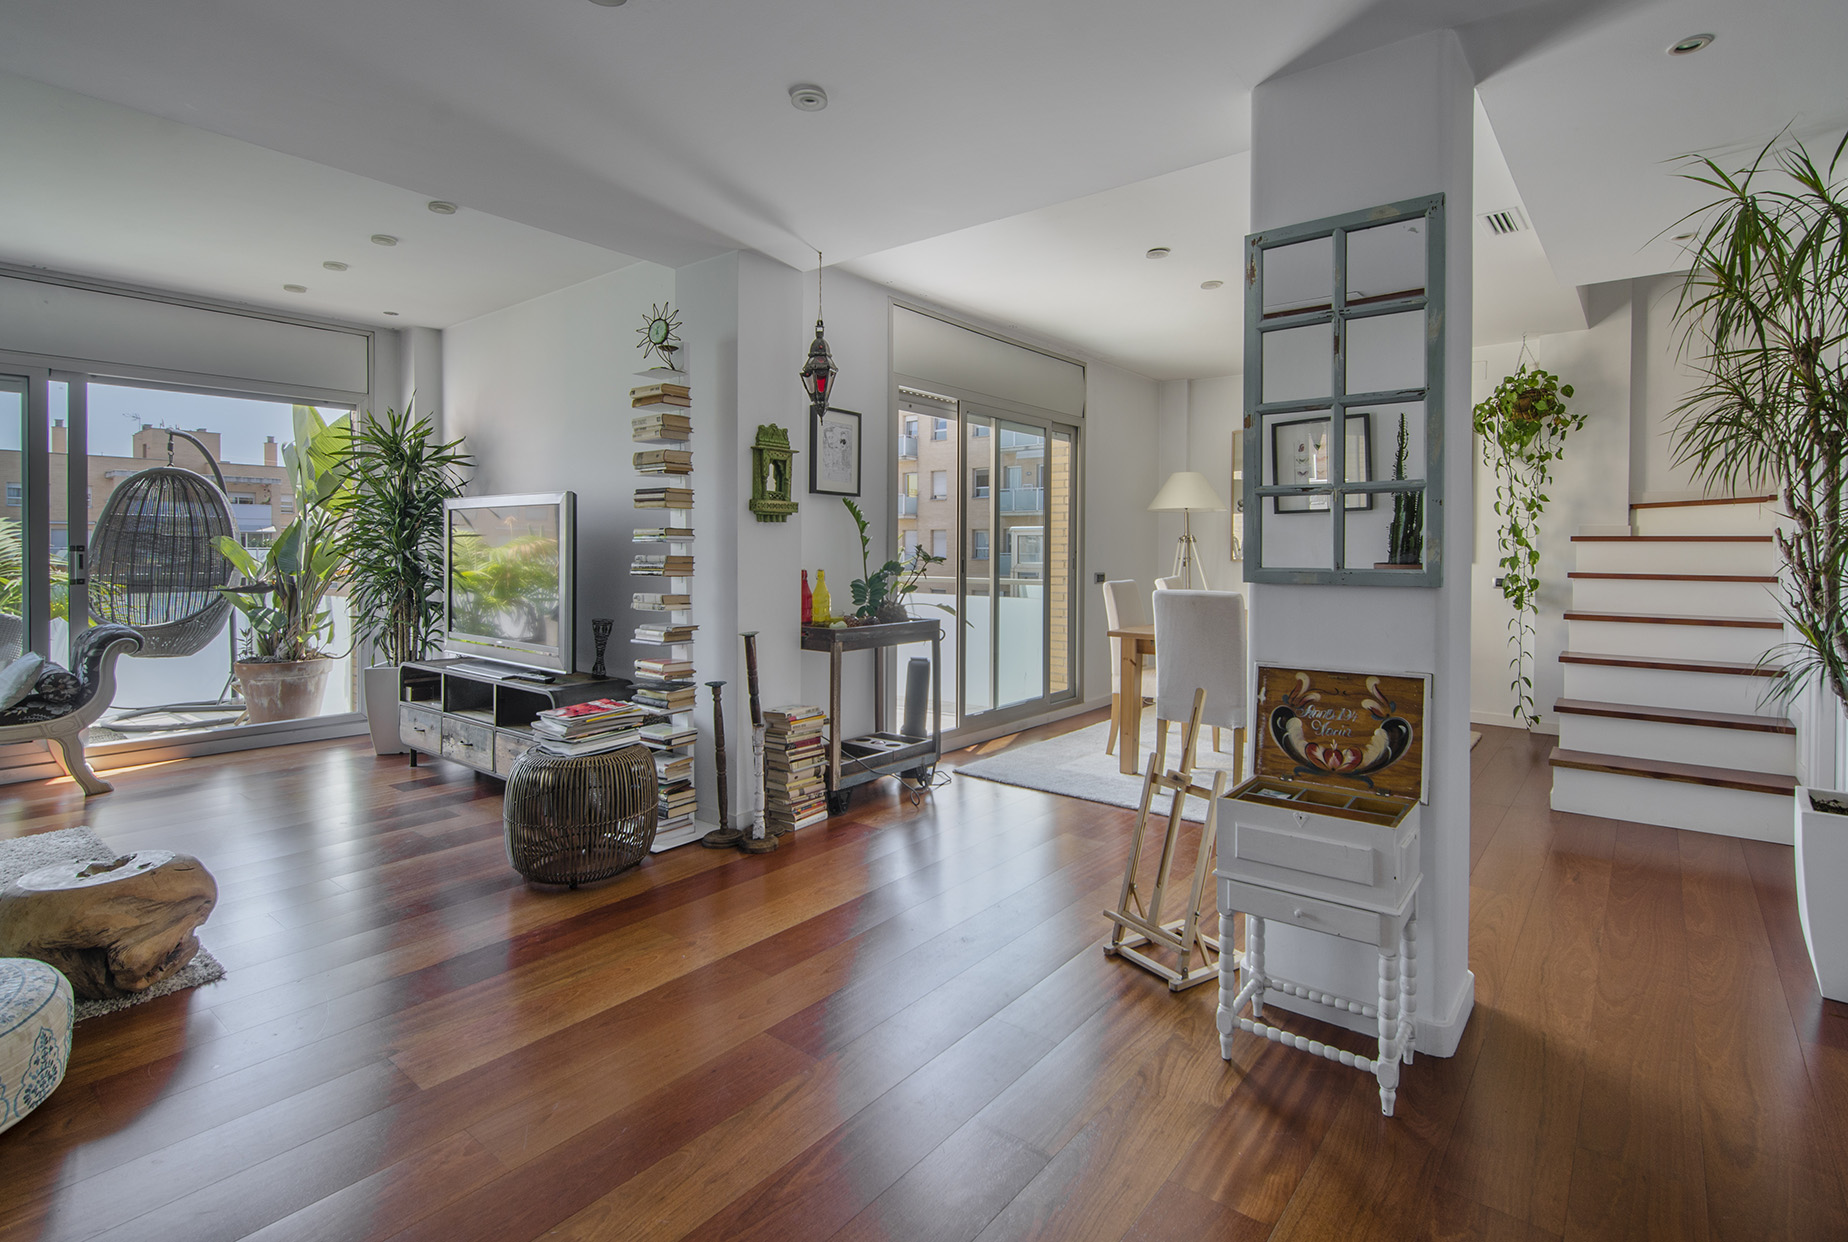 Apartment for Sale at Beautiful Penthouse with Terraces in Vila Olímpica Diagonal Mar, Barcelona City, Barcelona, 08019 Spain